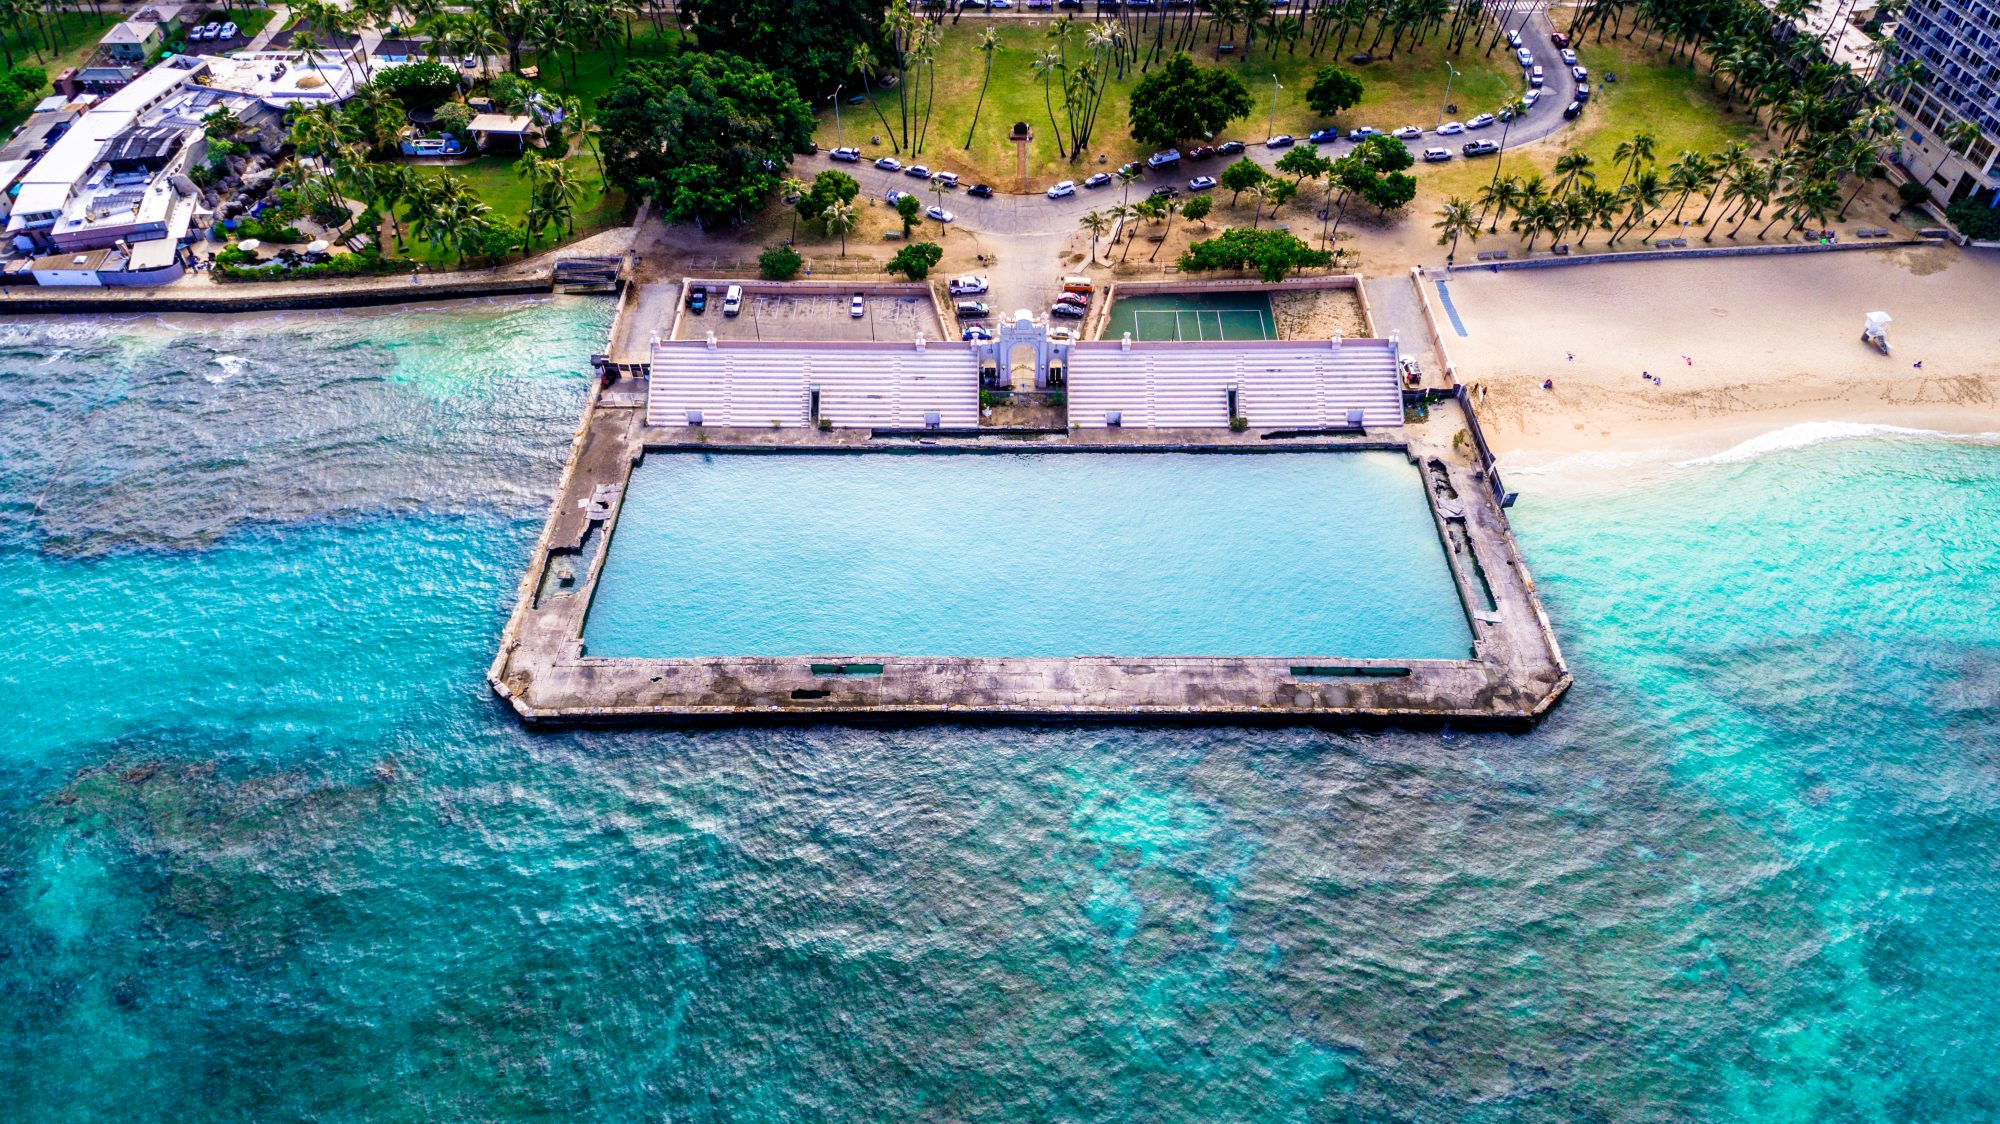 Waikiki Natatorium War Memorial Lagoon